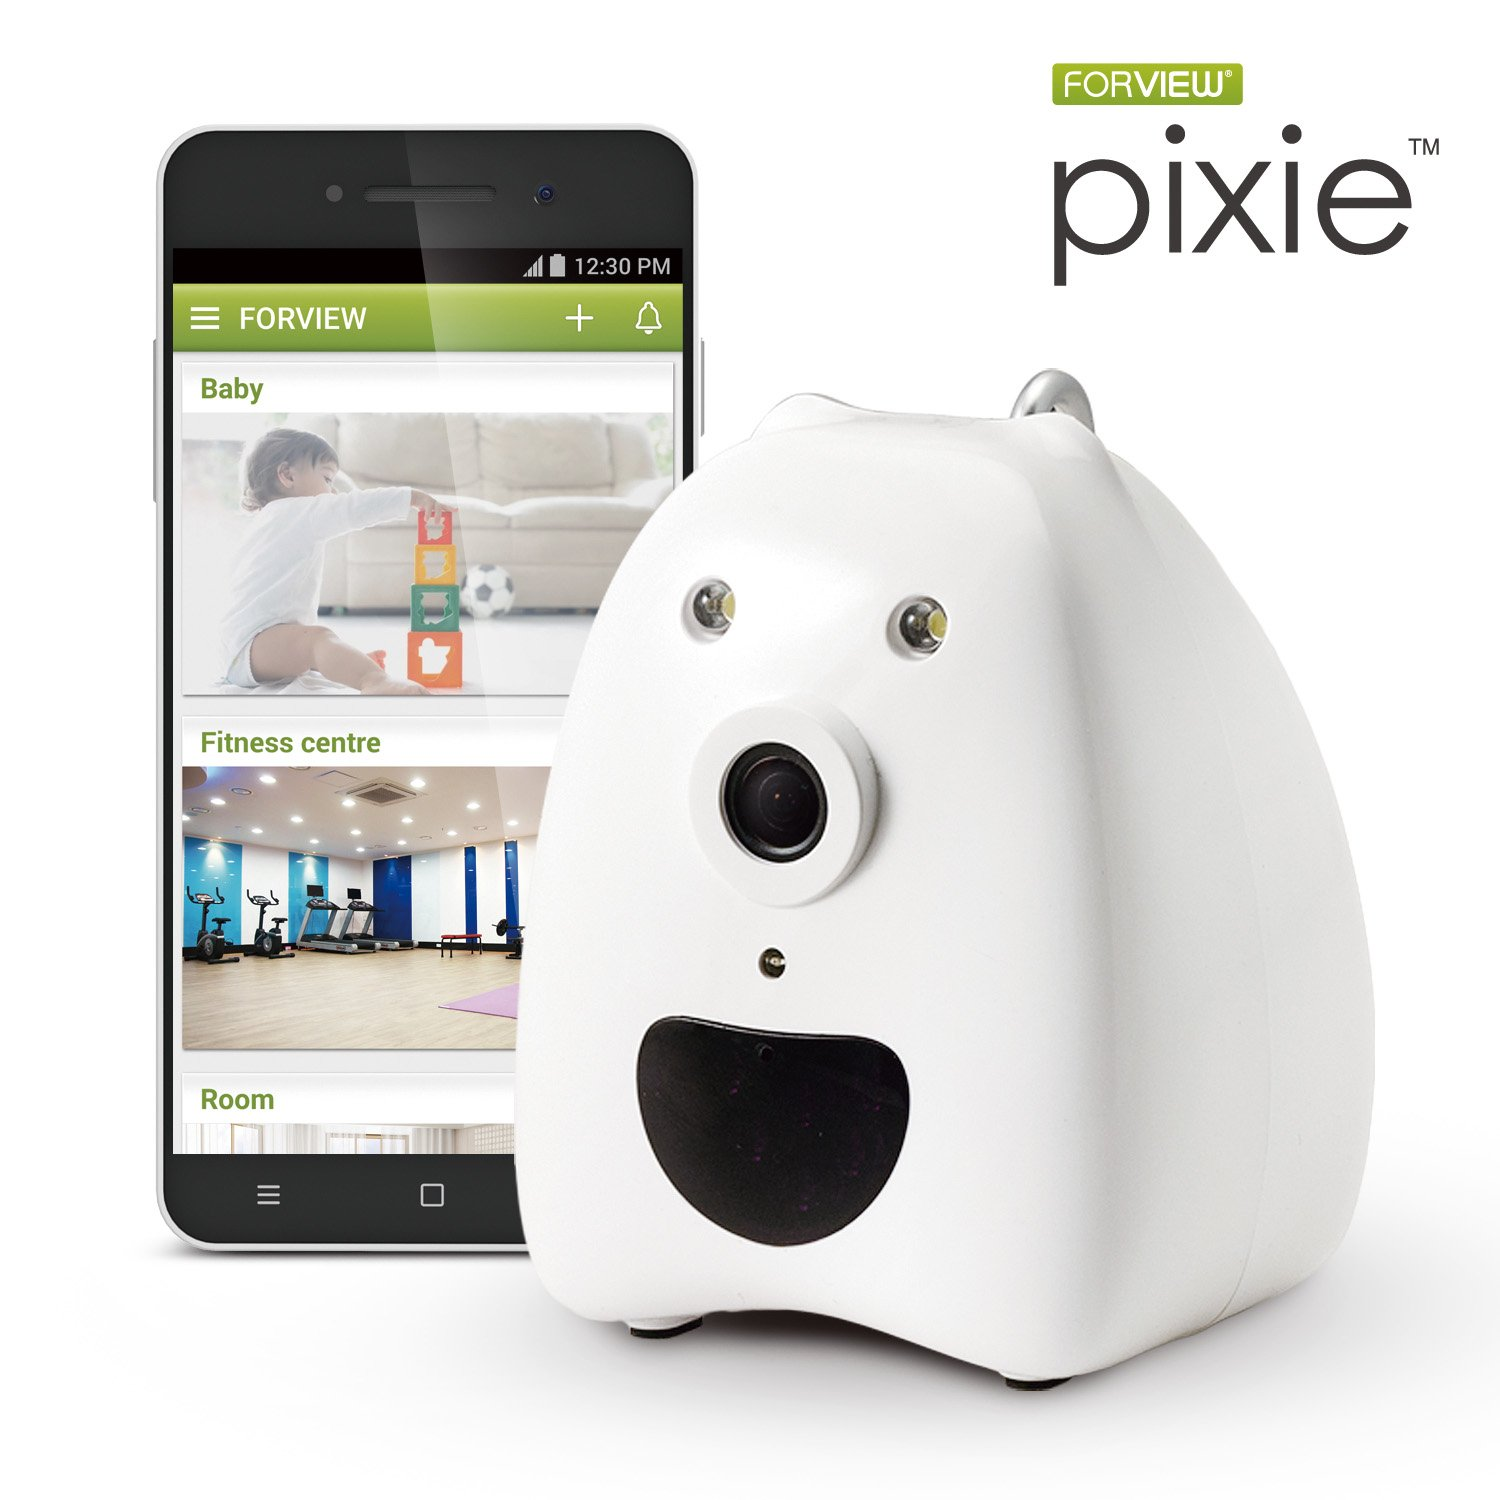 8GB SD card offered free Forview Pixie Wi Fi HD Day Night Home Camera Baby monitoring Pet monitoring with iOS and Android